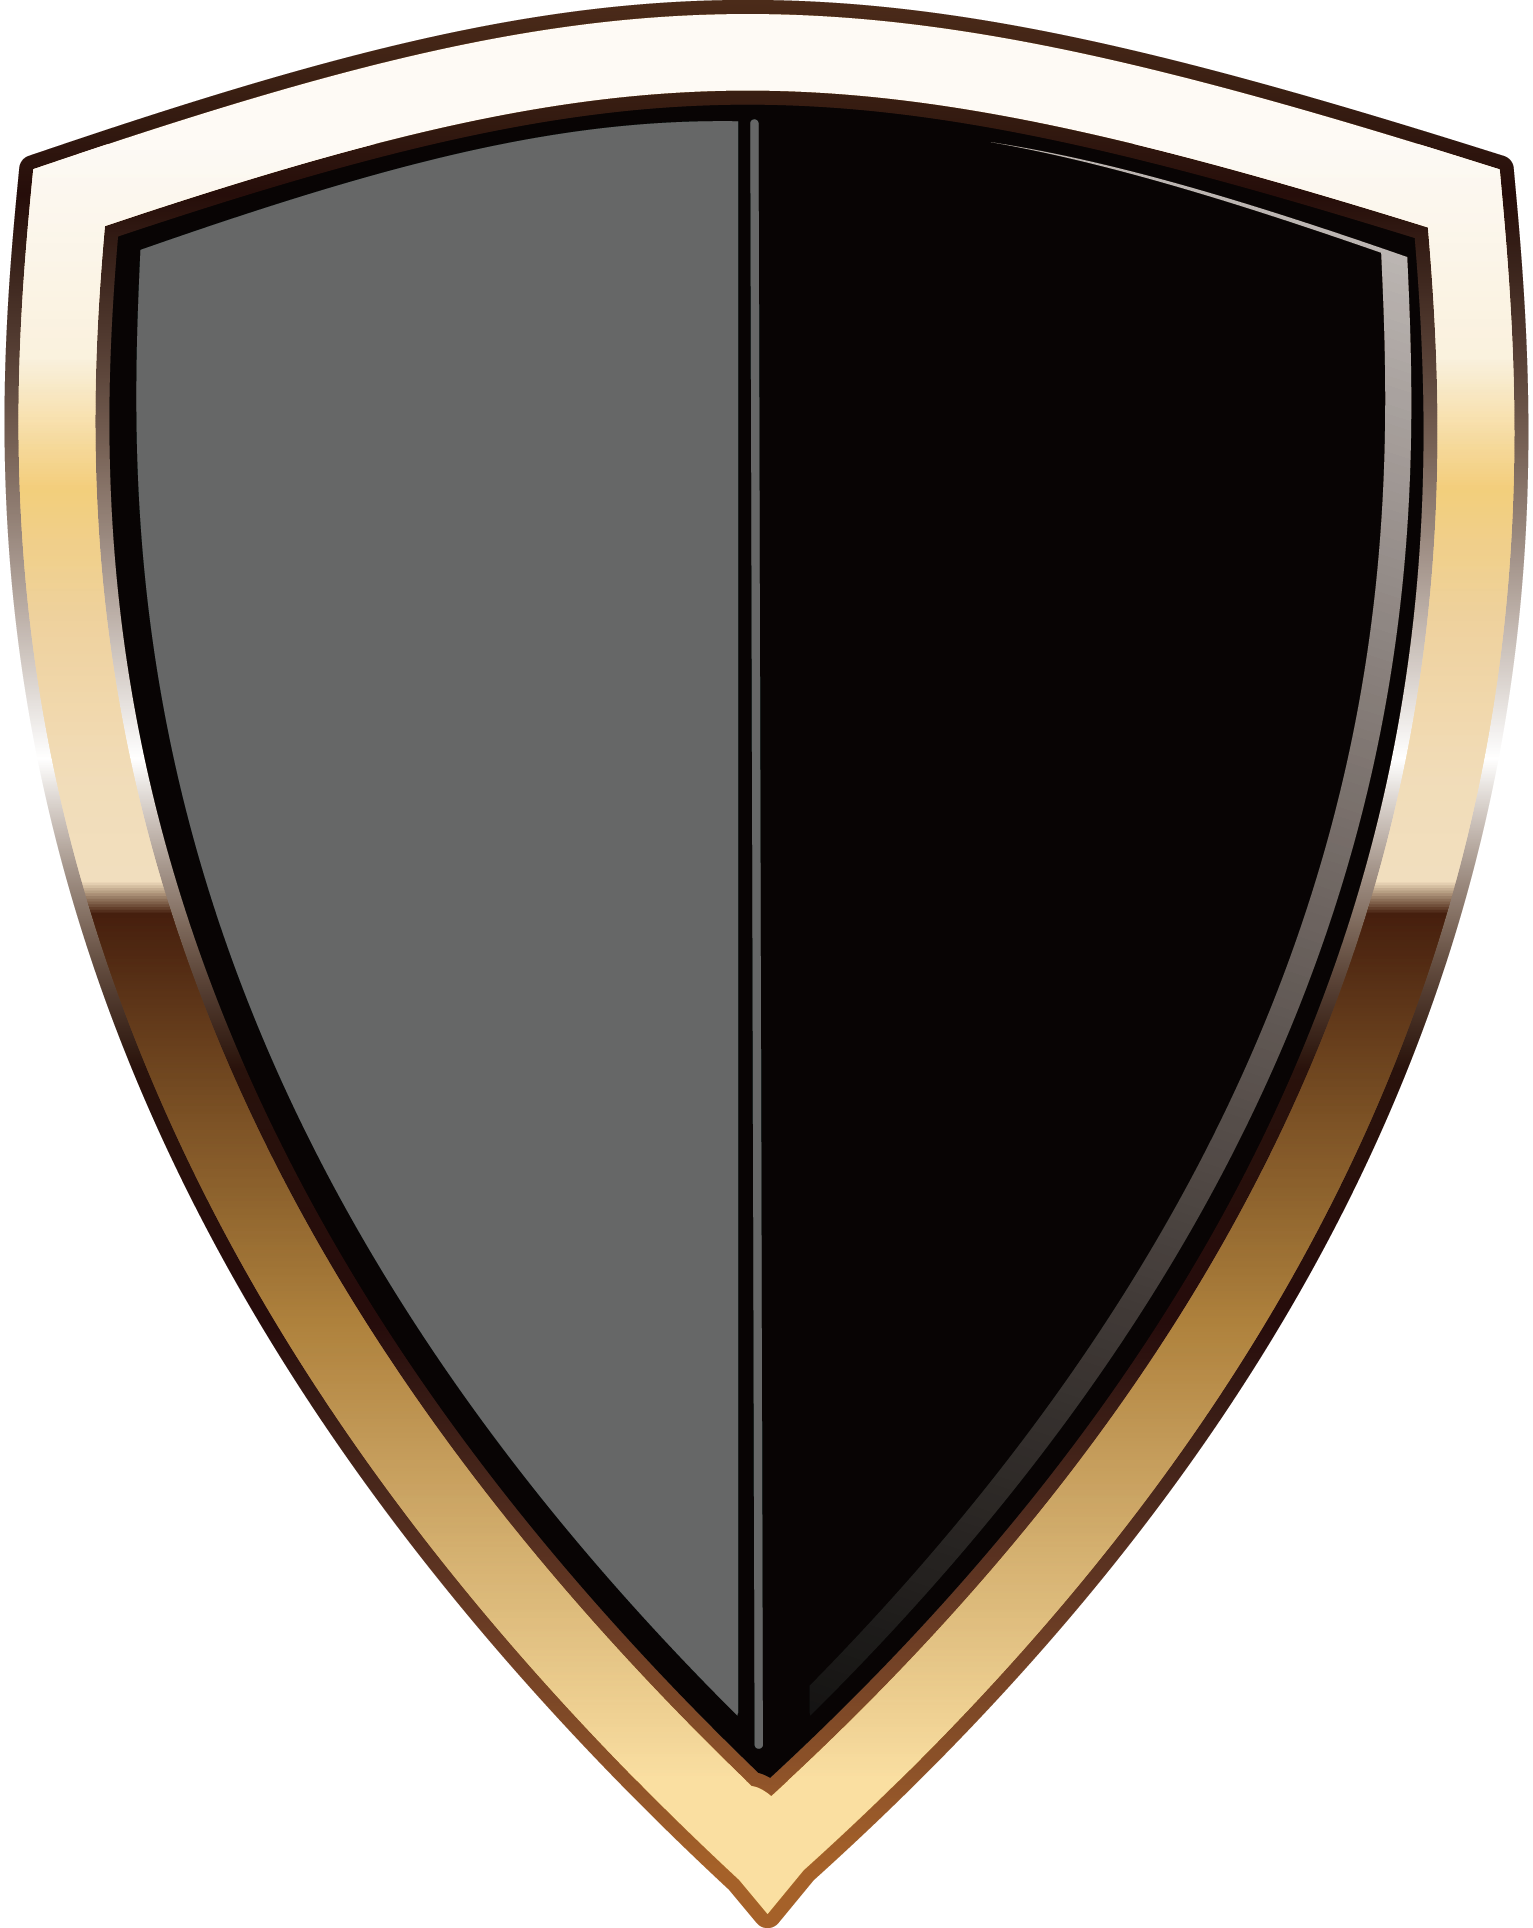 Logo transprent png free. Clipart shield security shield